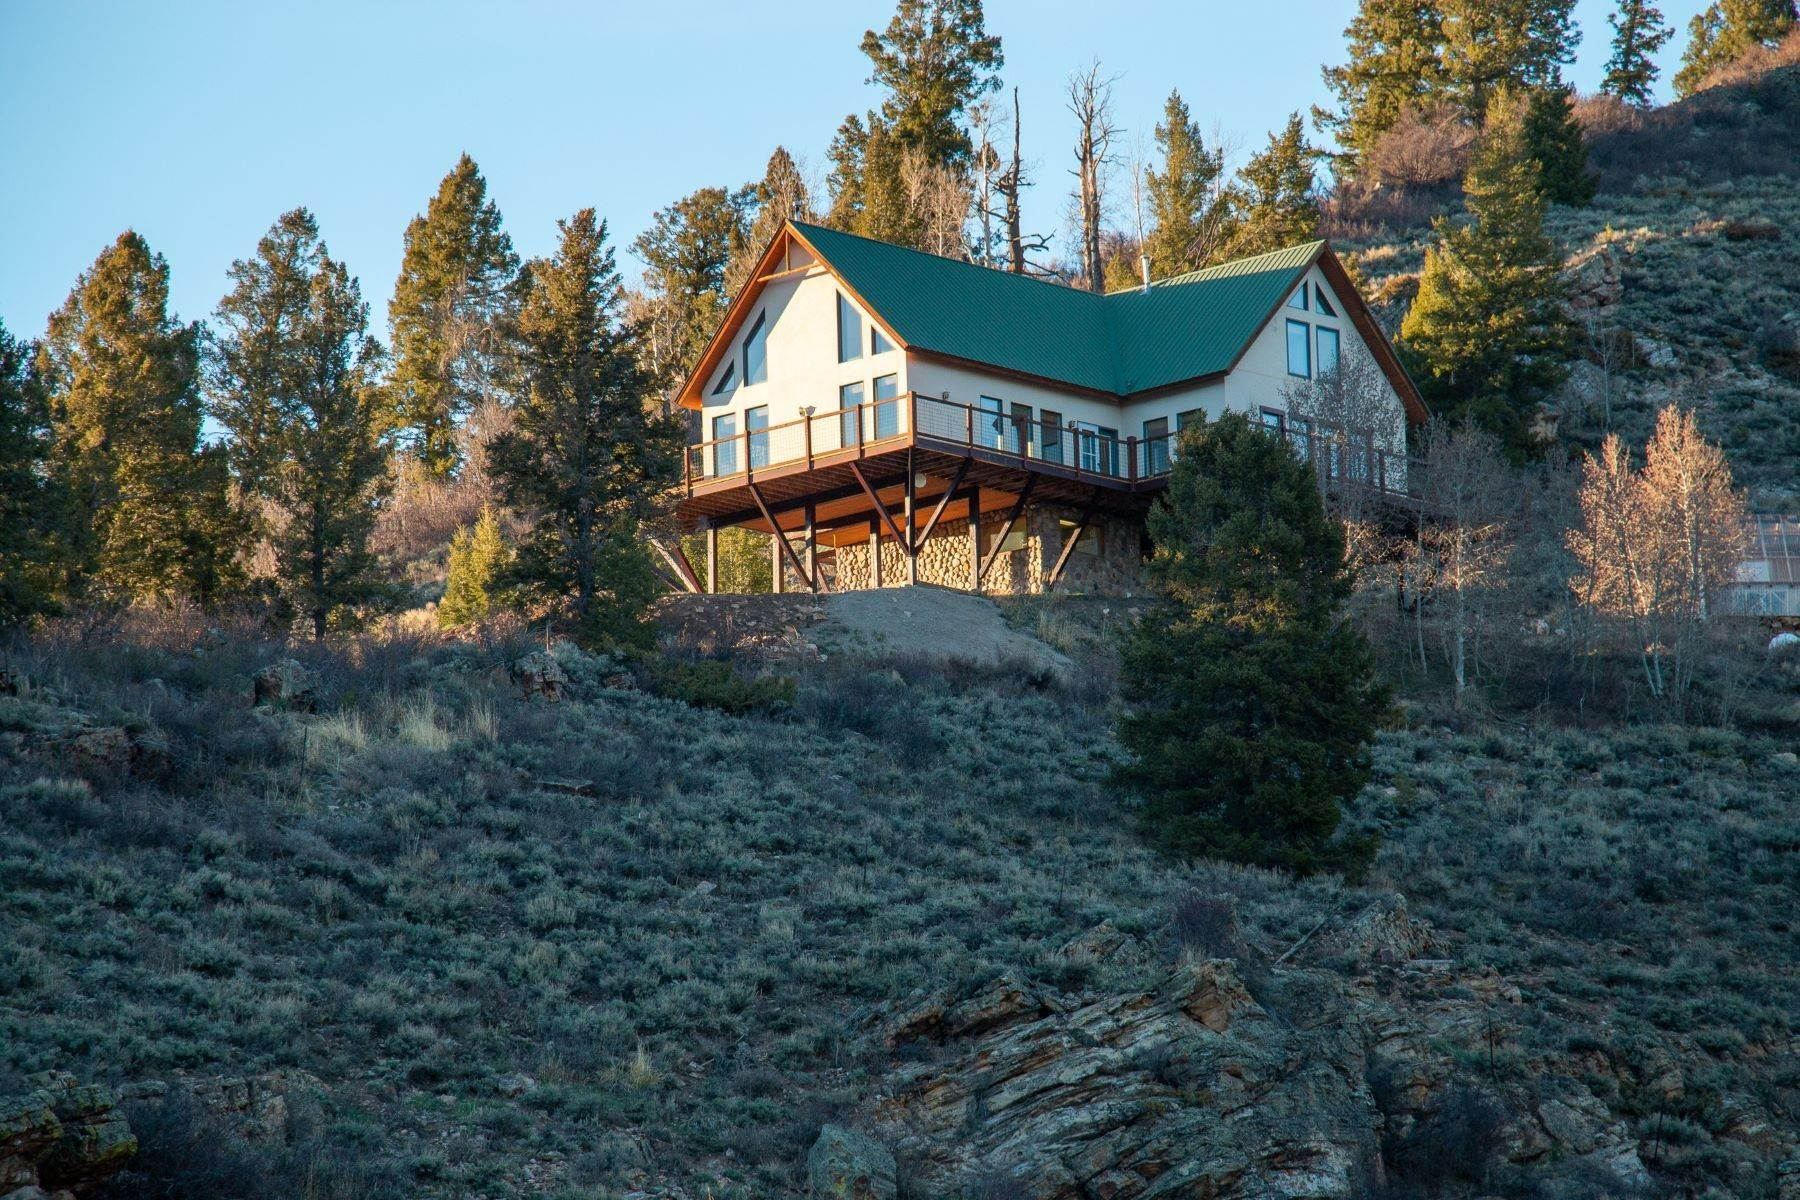 Single Family Homes for Sale at Four Bedroom Home on Elevated 35 Acre Lot with Stunning Views 10 Zeligman Street Crested Butte, Colorado 81224 United States